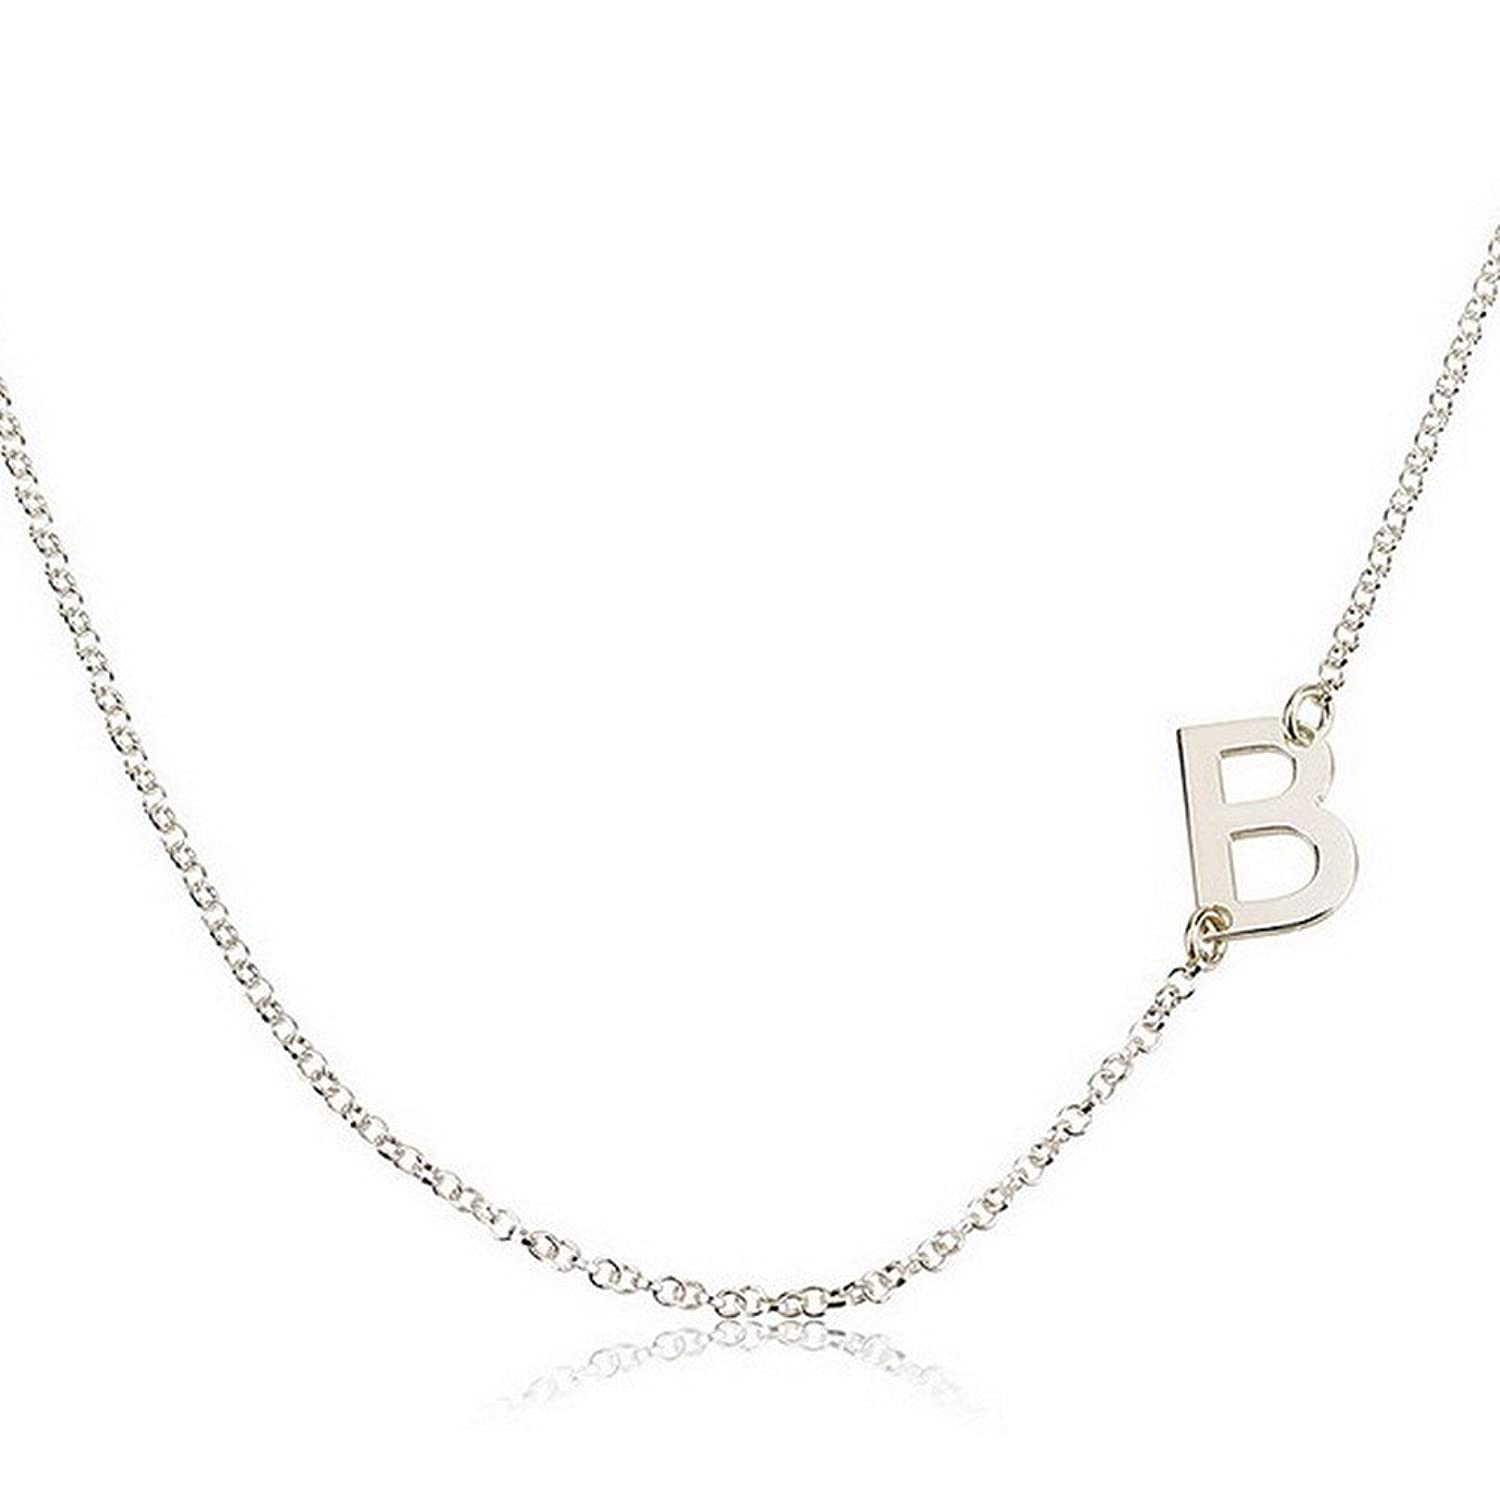 personalized necklace initial preview purchasing with charts sterling pearl letter persjewel name pendant one any custom characters or your silver before